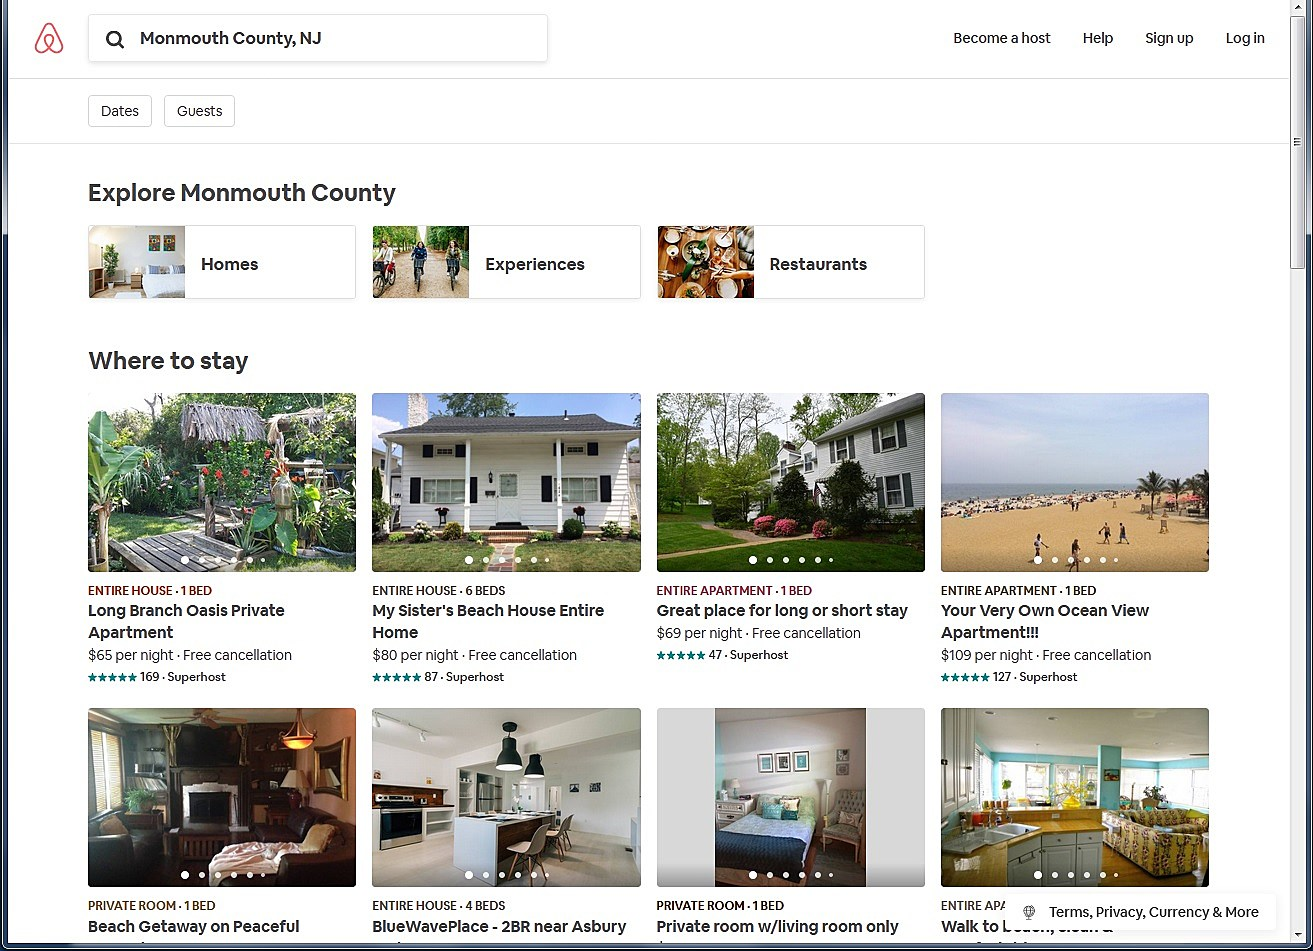 Are you being watched? Surveillance rules for Airbnb and hotels